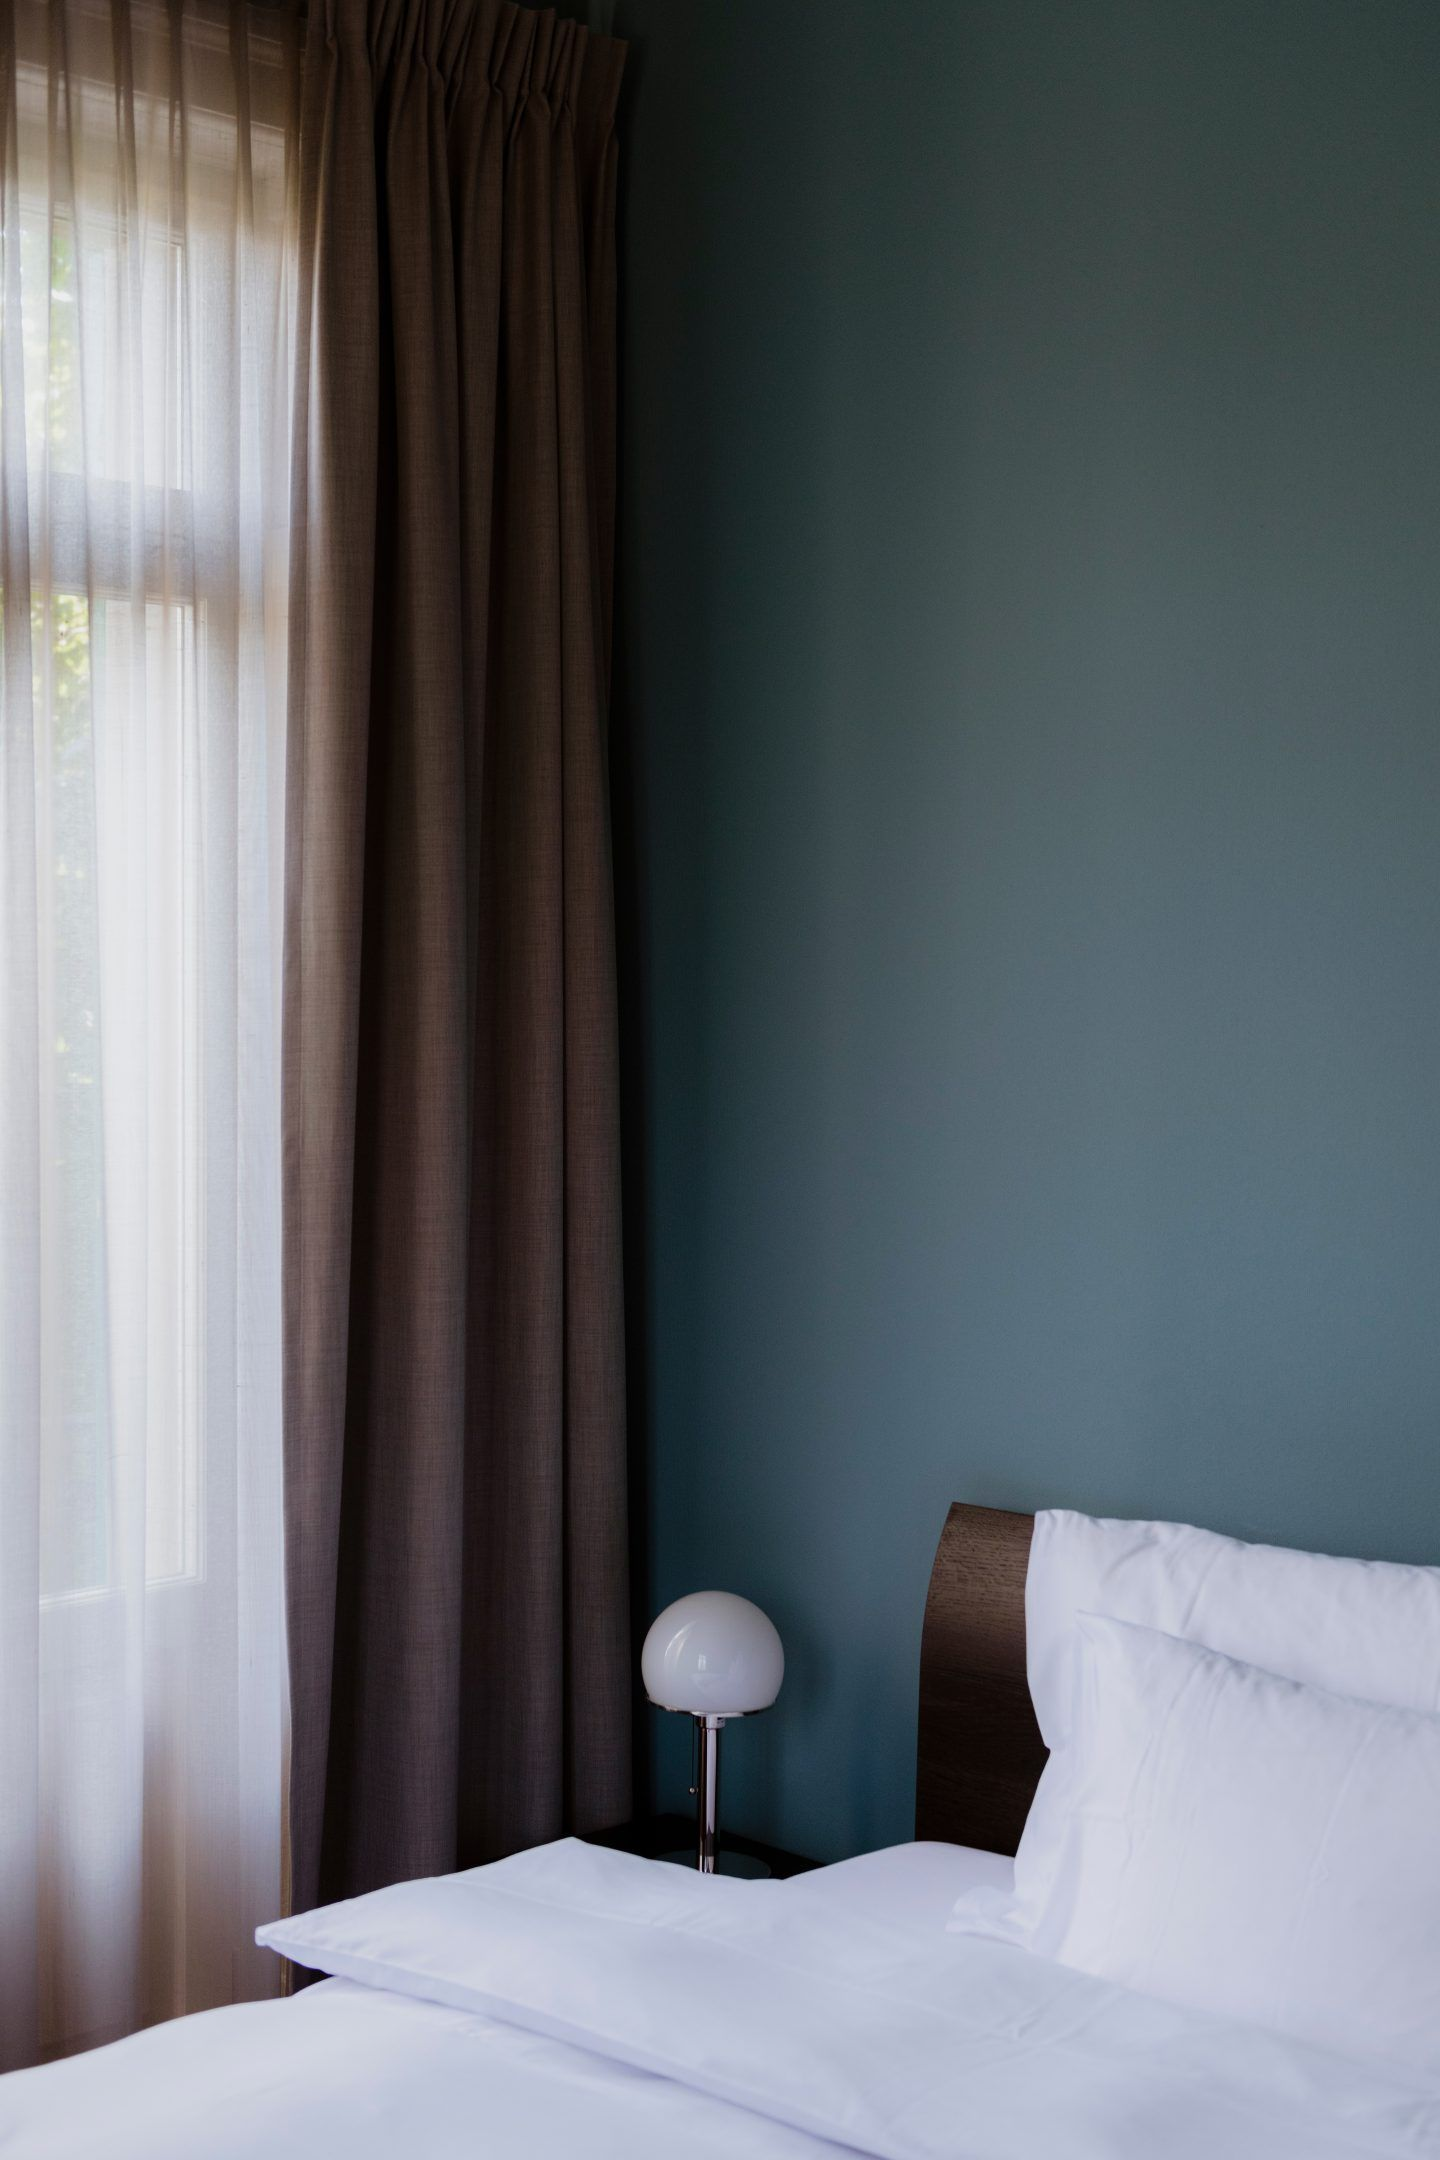 IGNANT-Travel-Zurich-Sleep-Signau-House-06